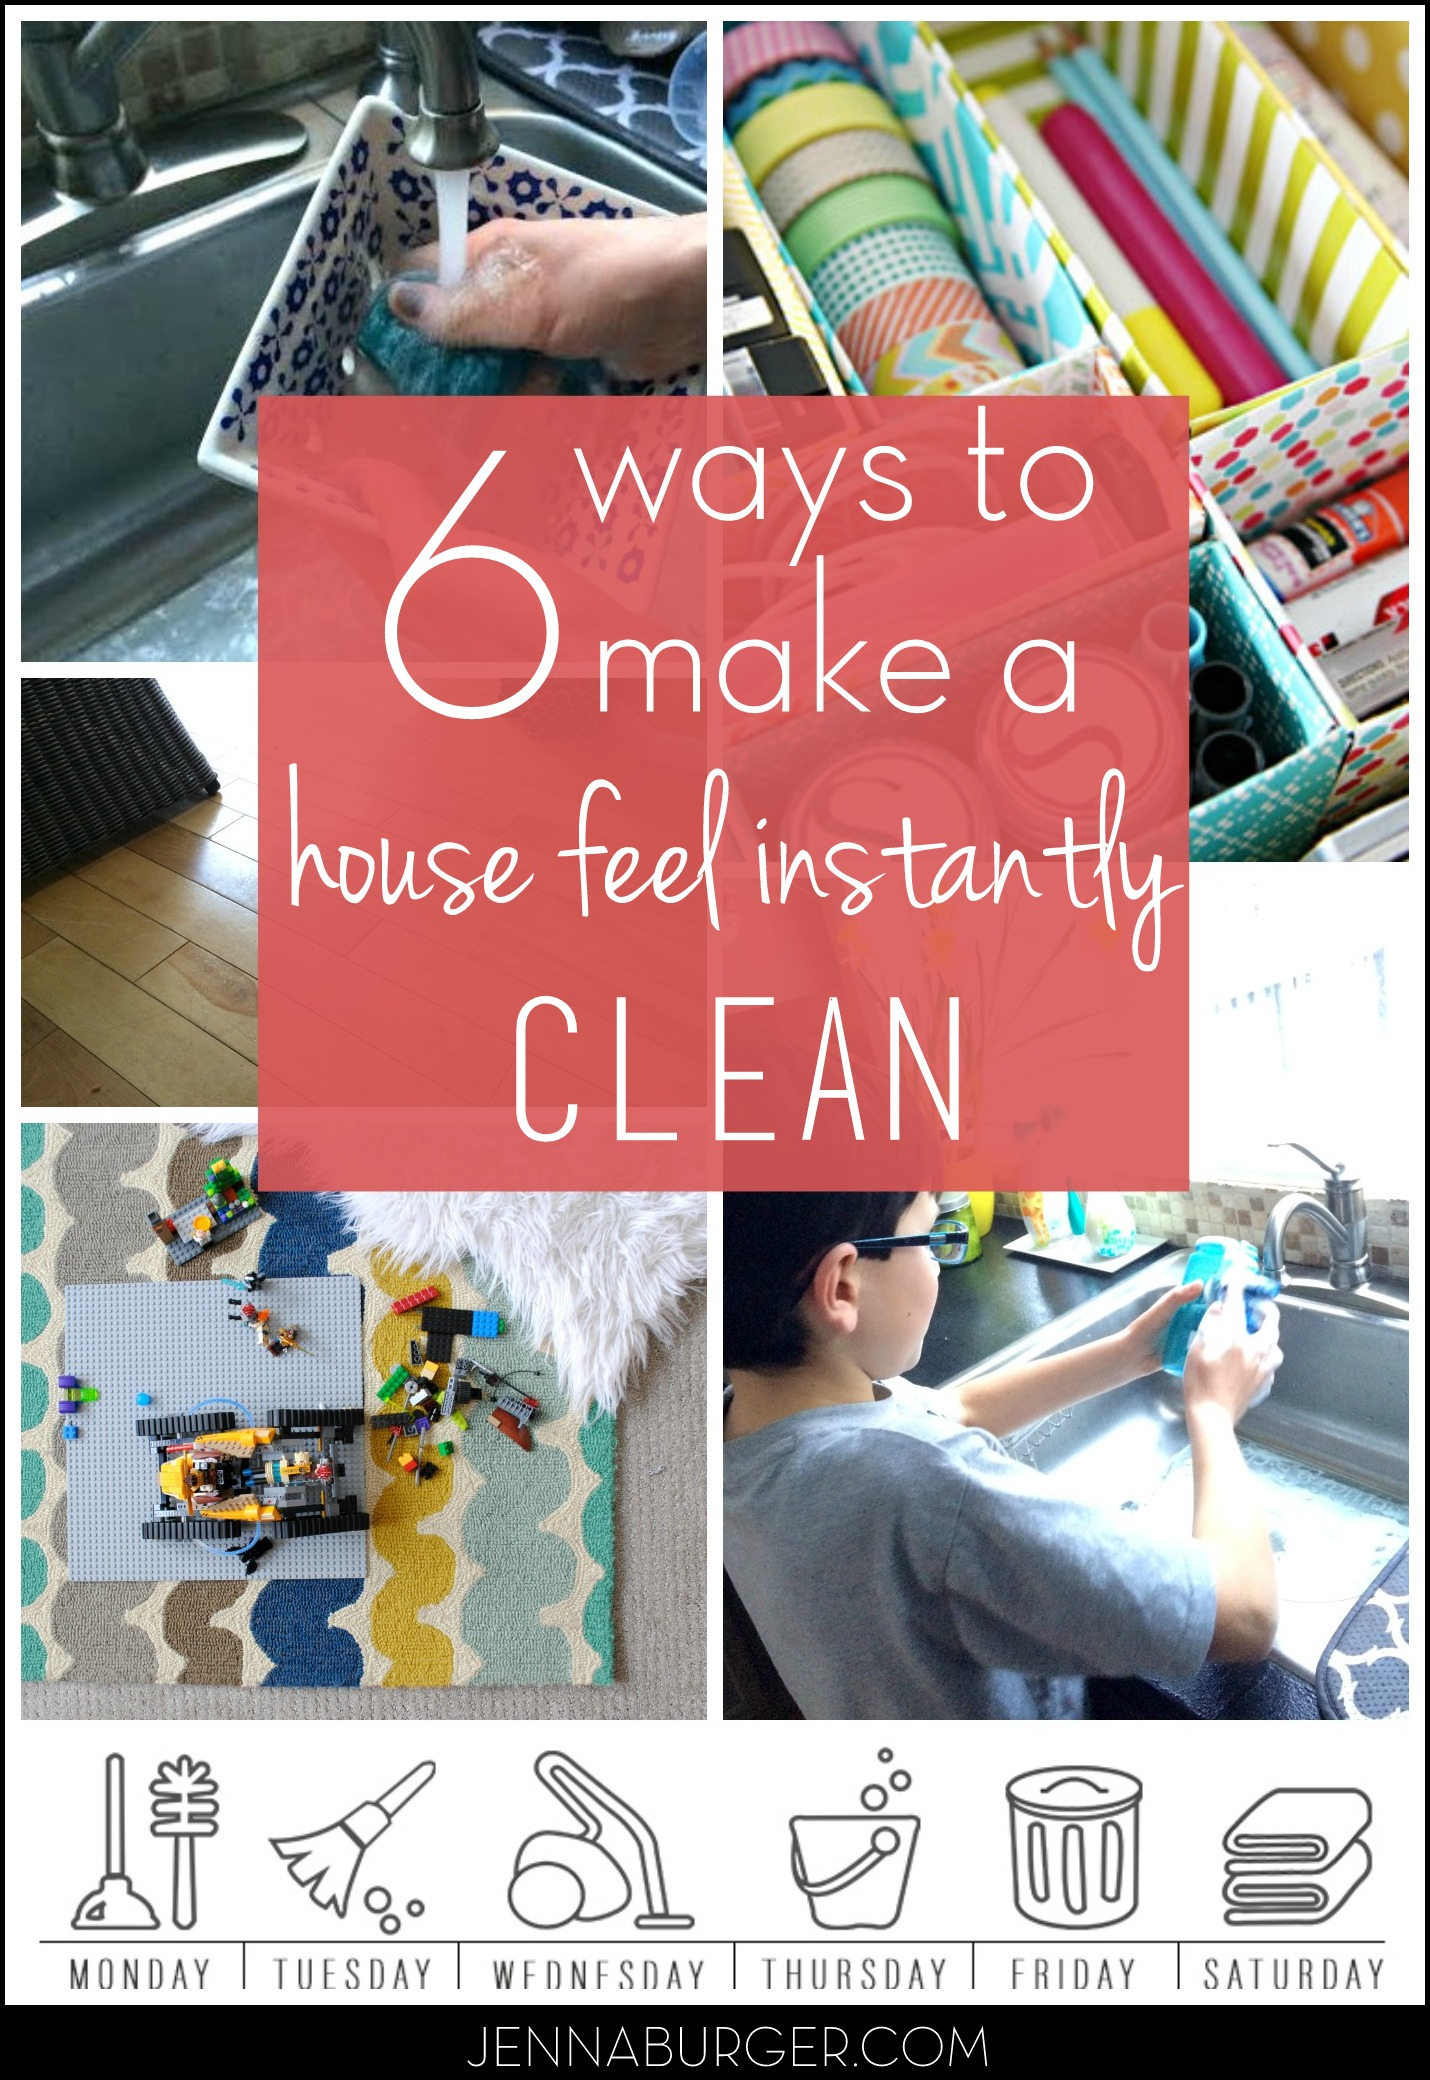 6 Ways to Make a House Feel Instantly Clean - Jenna Burger